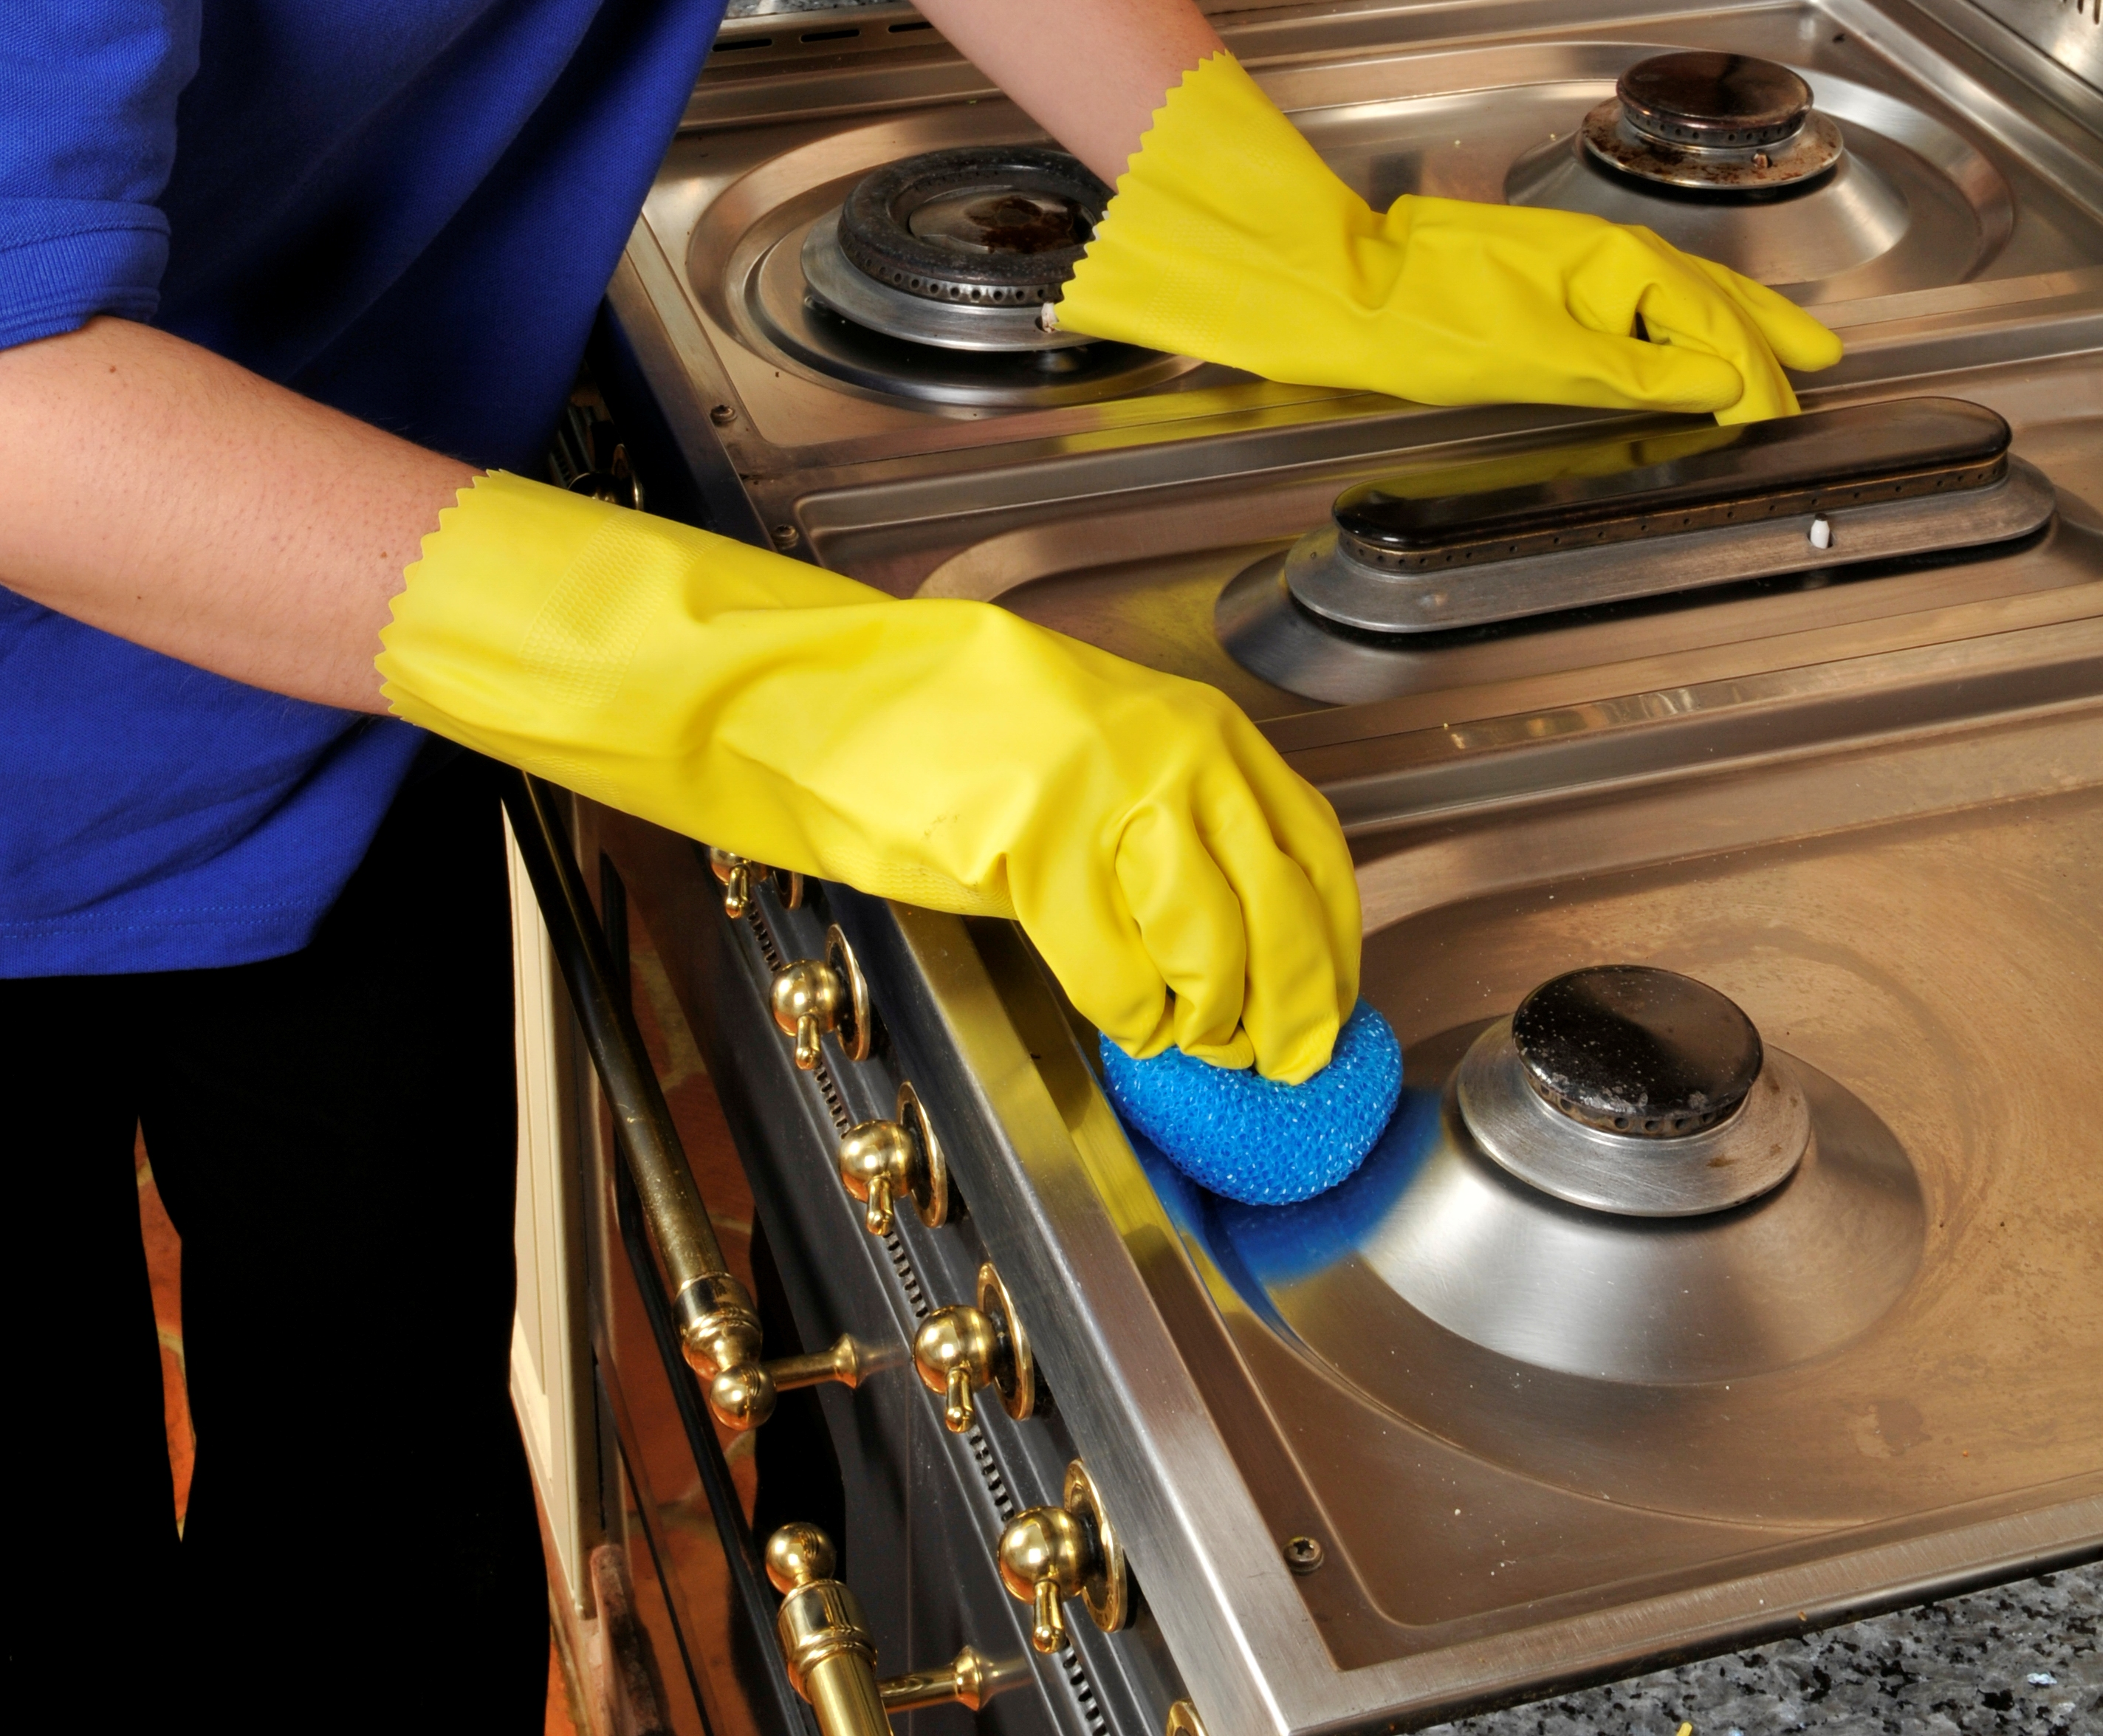 yellow rubber gloves cleaning an oven hob